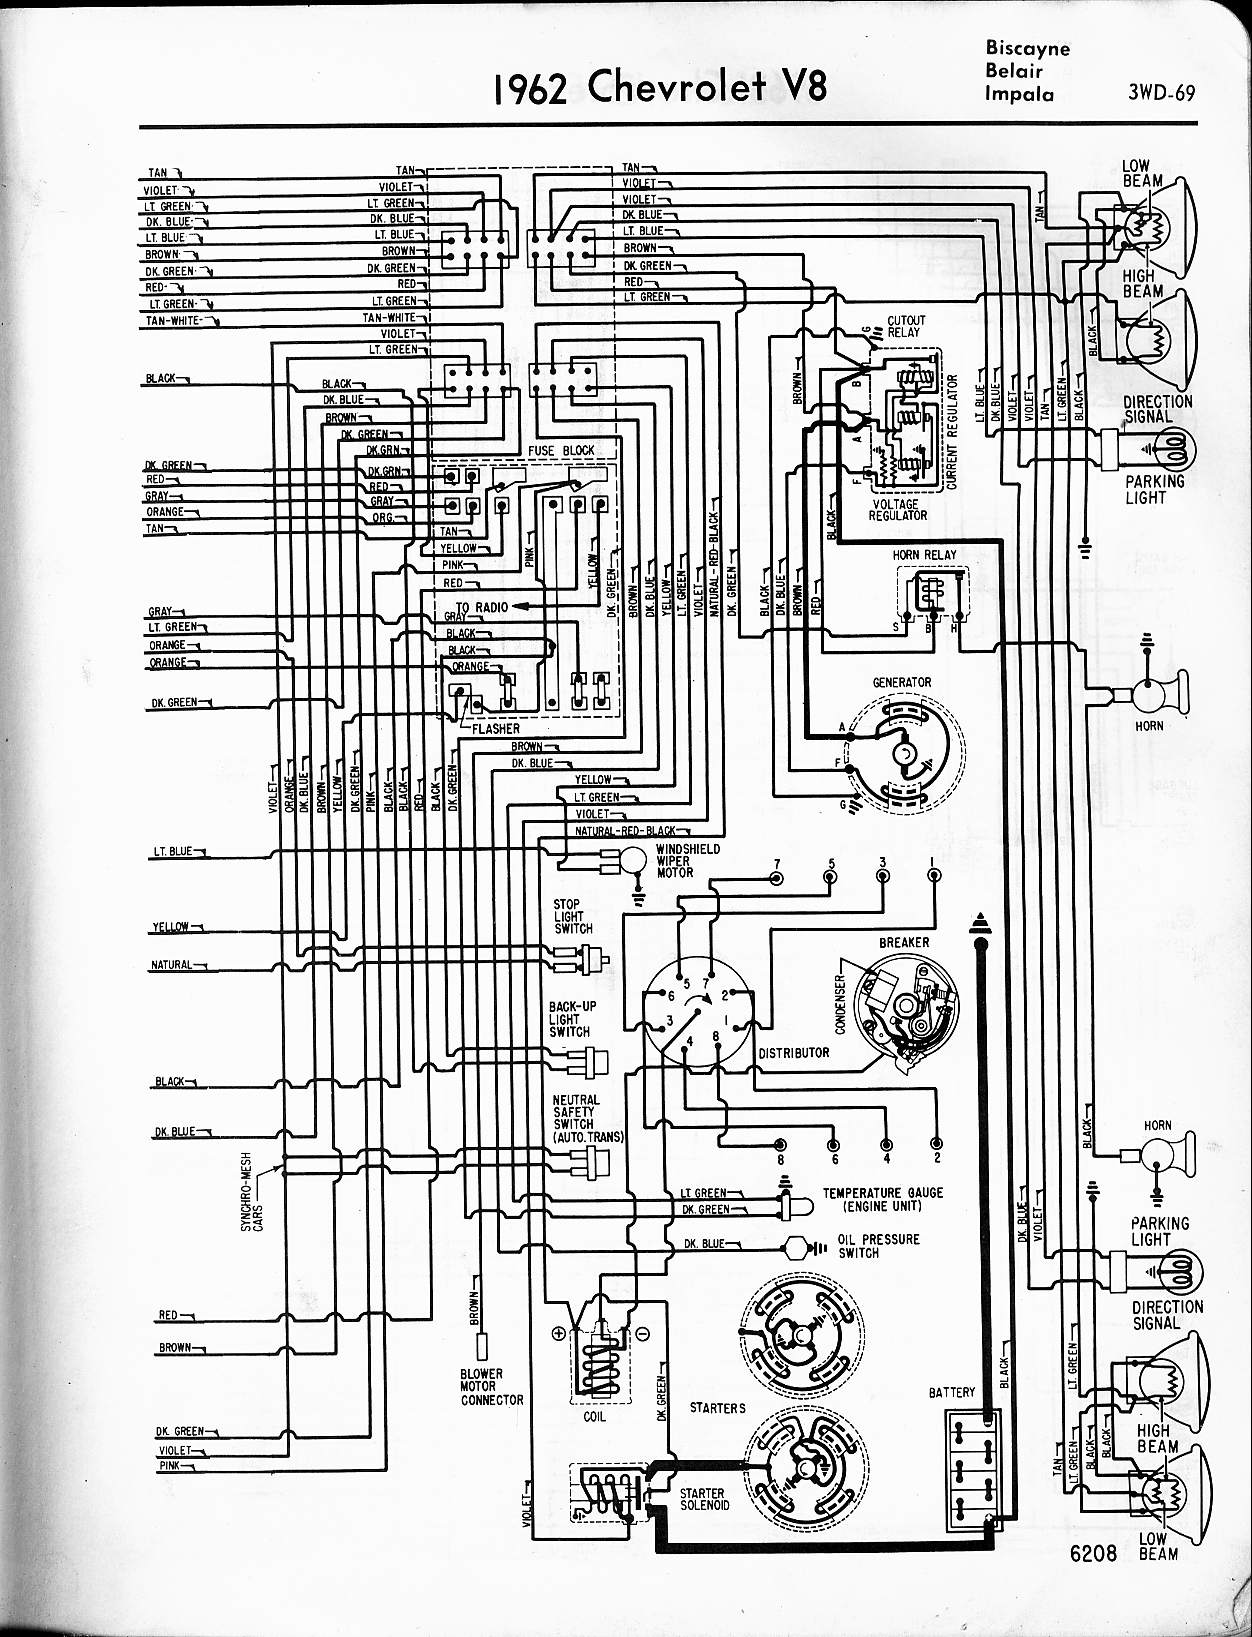 57 65 chevy wiring diagrams 1984 chevy impala  chevy truck wiring harness